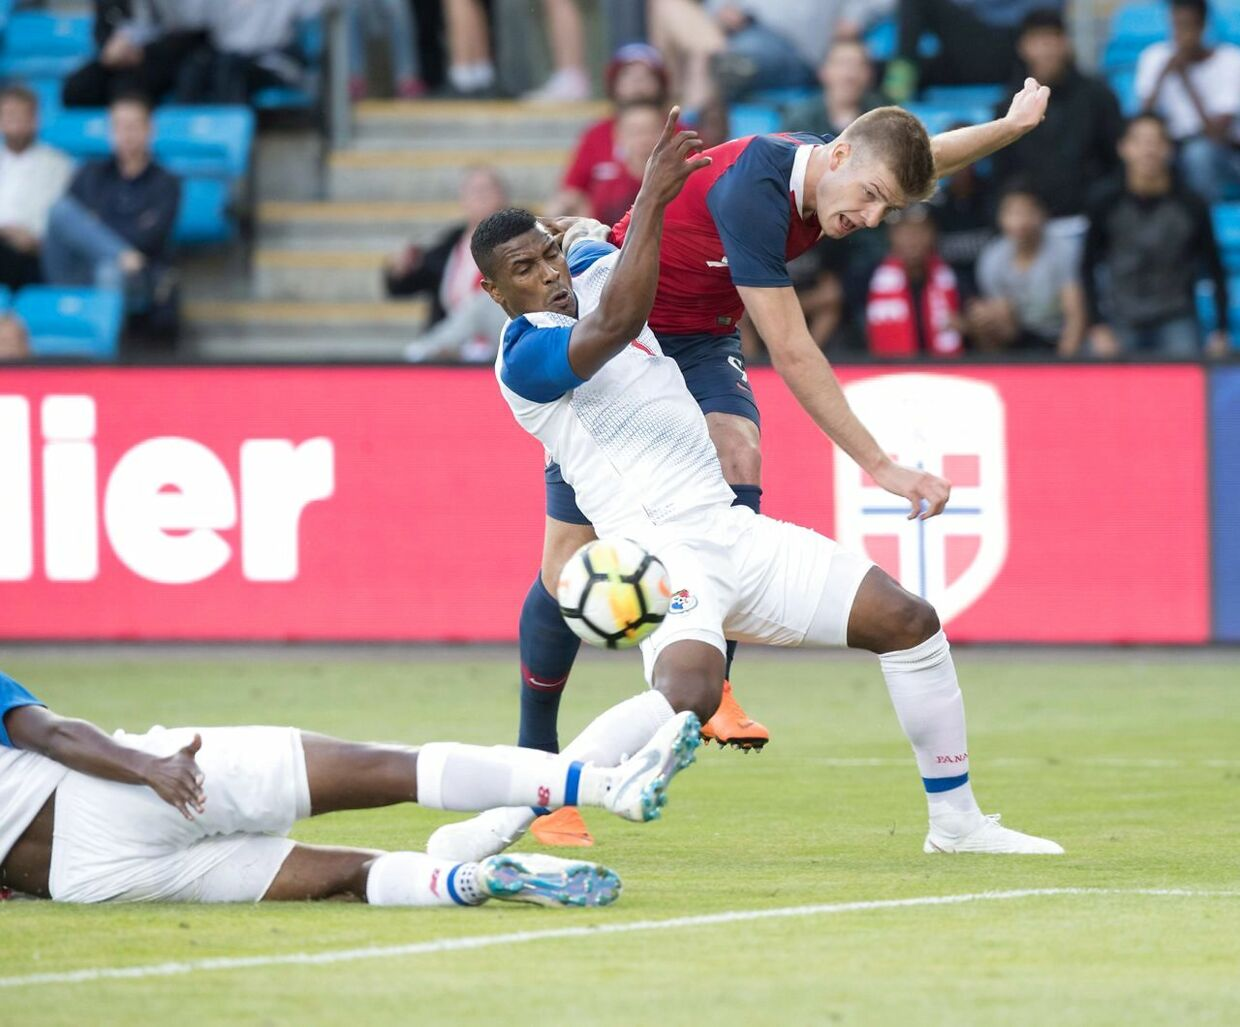 Norway's Alexander Soerloth (R) and Panama's Harold Cummings vie for the ball during the international friendly football match between Norway and Panama in Oslo on June 6, 2018. / AFP PHOTO / NTB Scanpix / Terje PEDERSEN / Norway OUT